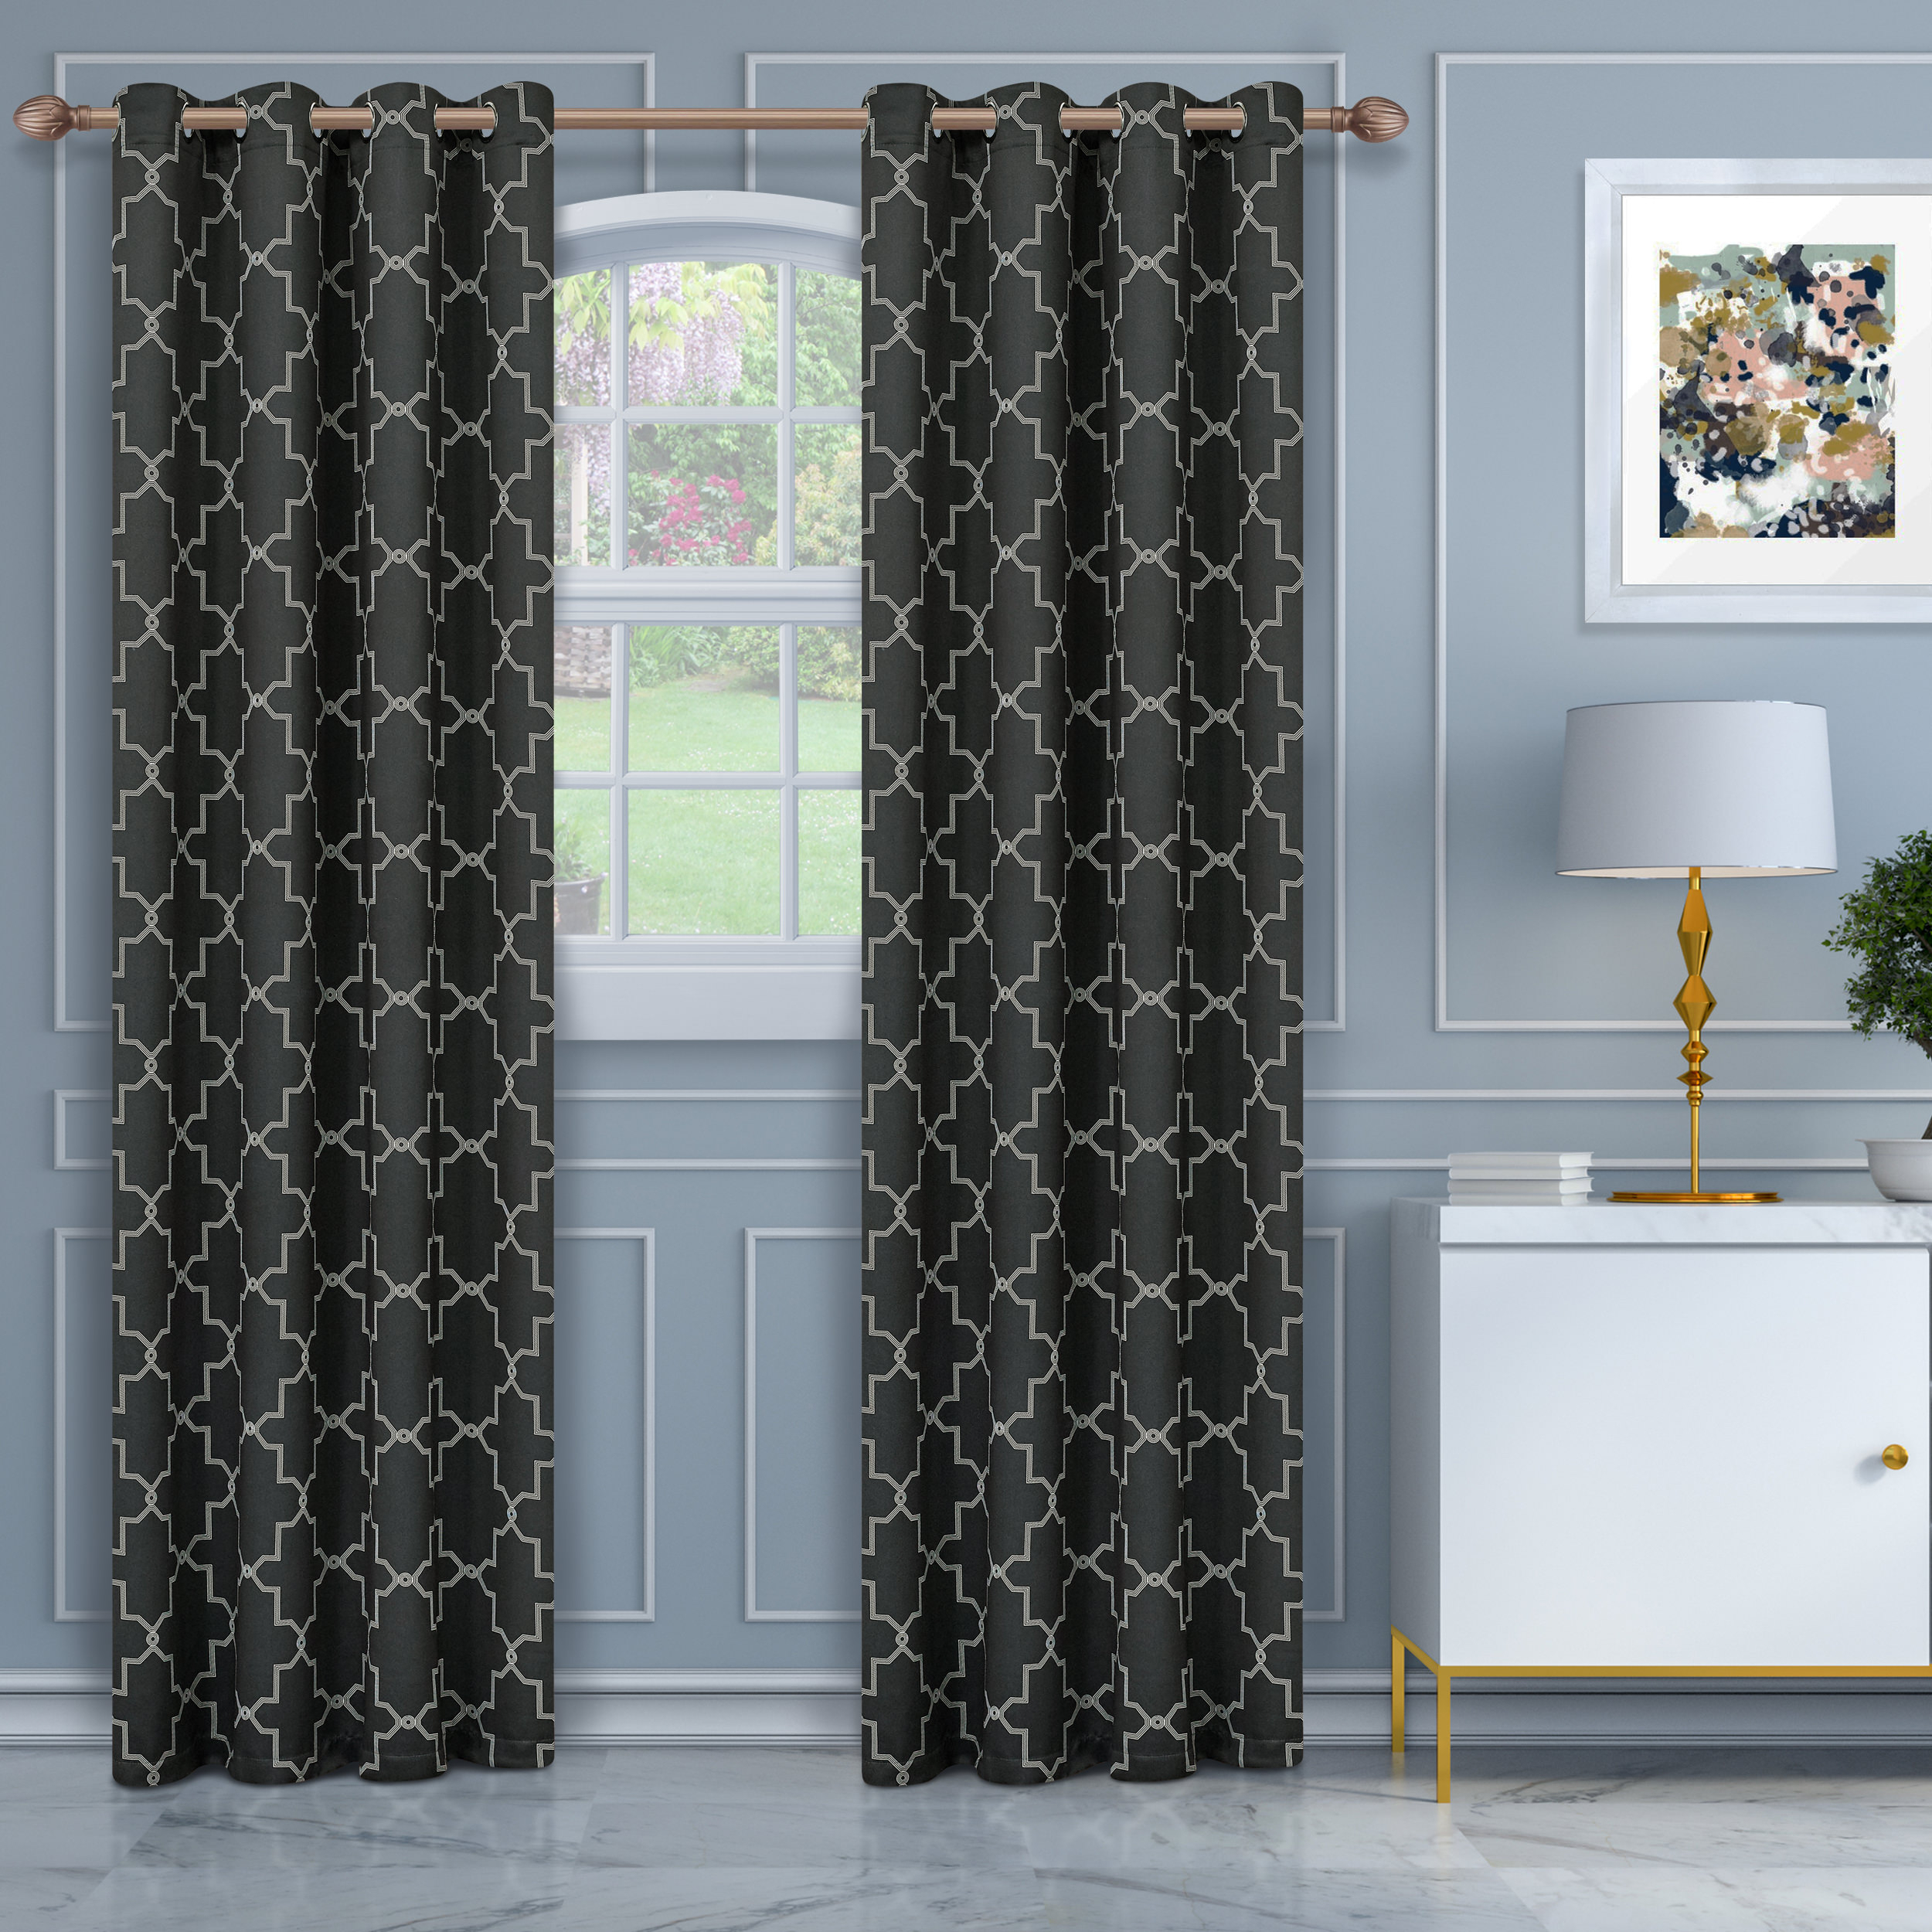 Superior Soft Quality Woven, Imperial Trellis Blackout Thermal Grommet Curtain Panel Pair Pertaining To Superior Solid Insulated Thermal Blackout Grommet Curtain Panel Pairs (View 23 of 30)